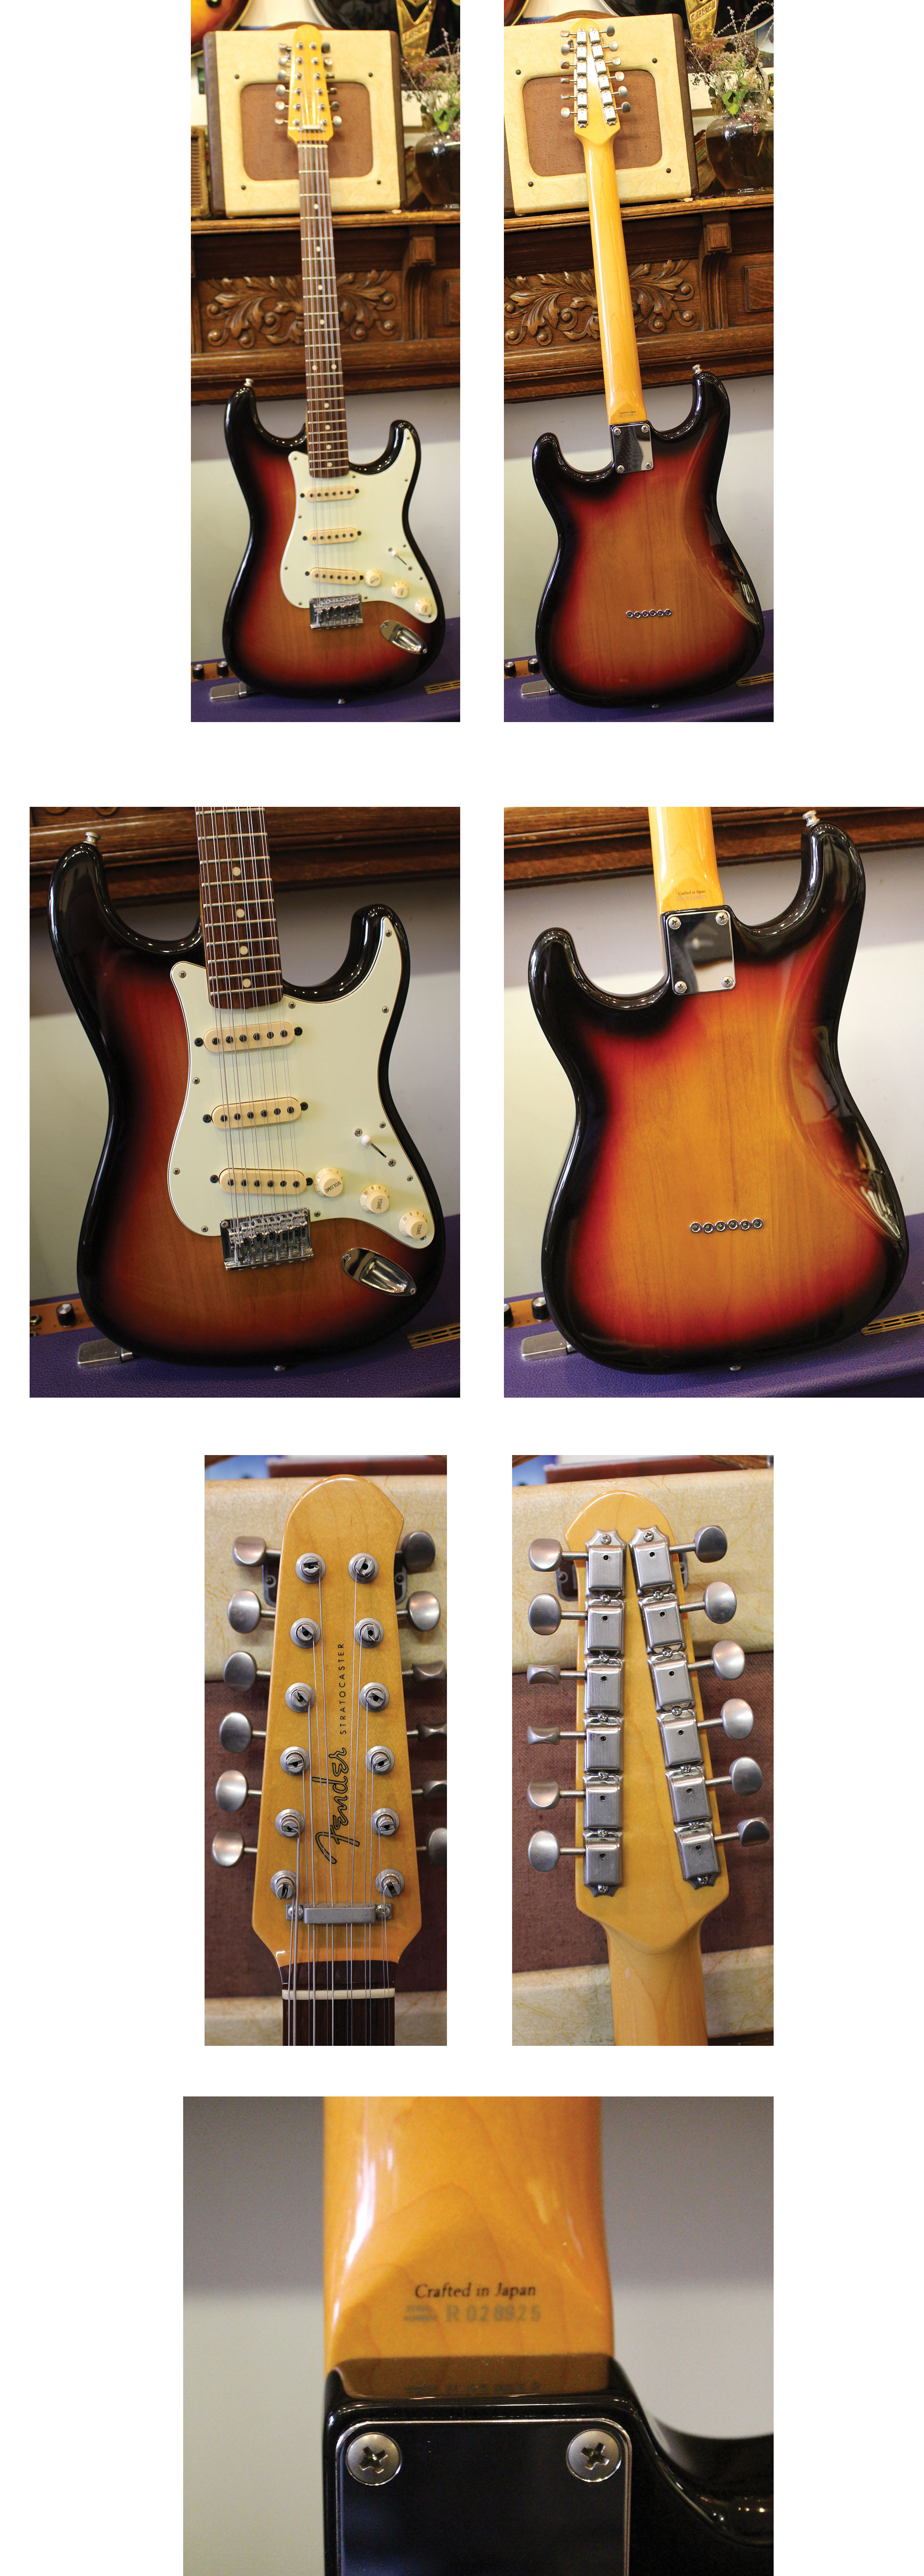 Stock Guitar Gretsch Tone Switch And Knob Besides Control Wiring 650 Fender Stratocaster 12 String Crafted In Japan Sunburst Rosewood Board Strat Body With Paddle Head Neck Exc Ohsc